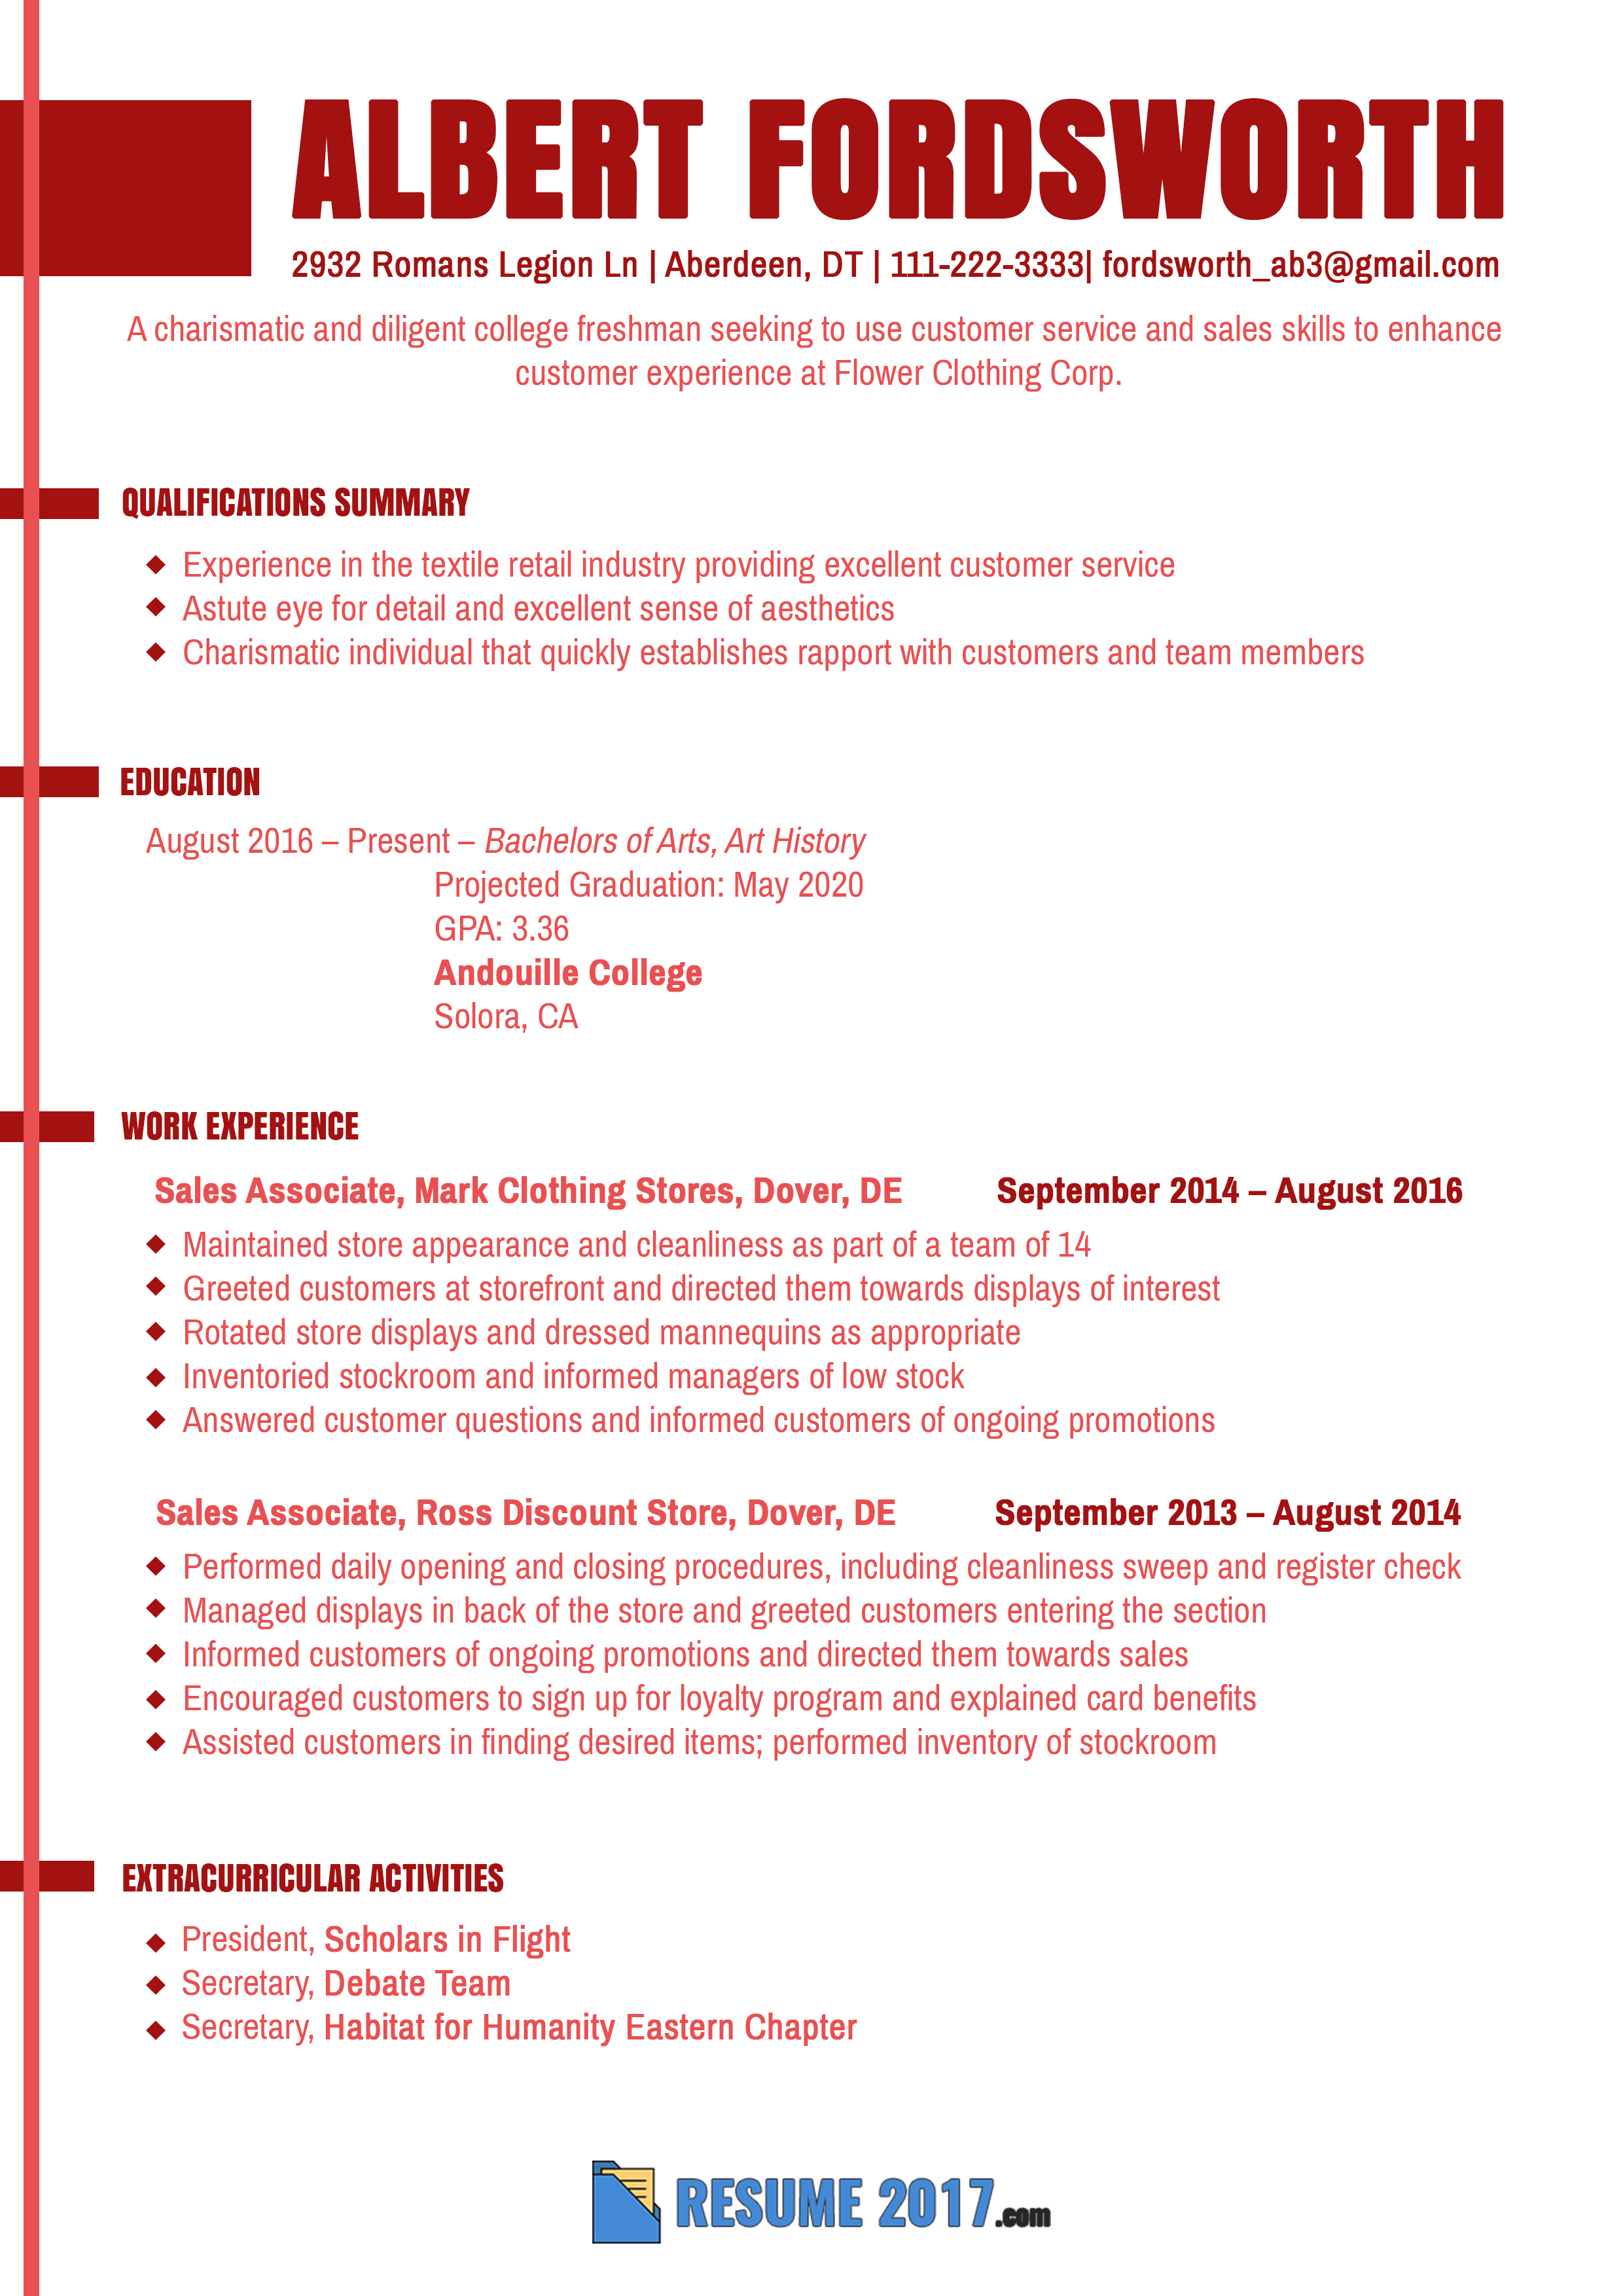 See this freshman proper resume sample to learn how to